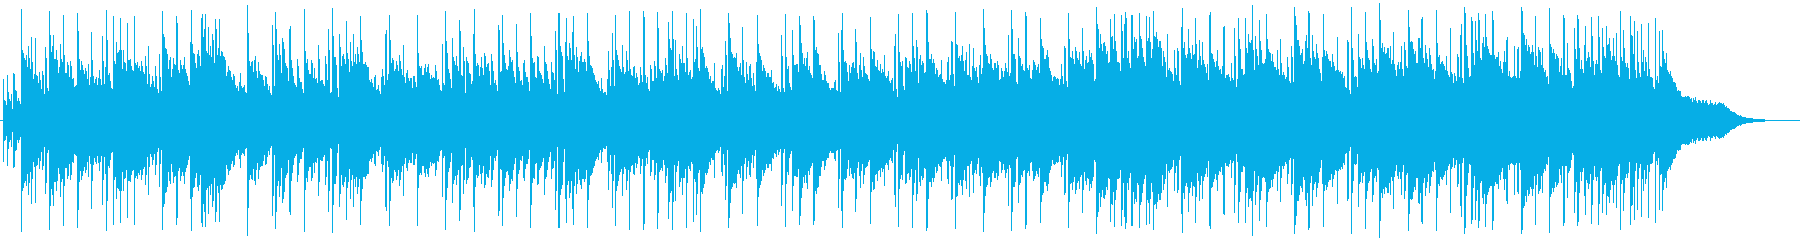 Clean and bright wedding style BGM's reproduced waveform